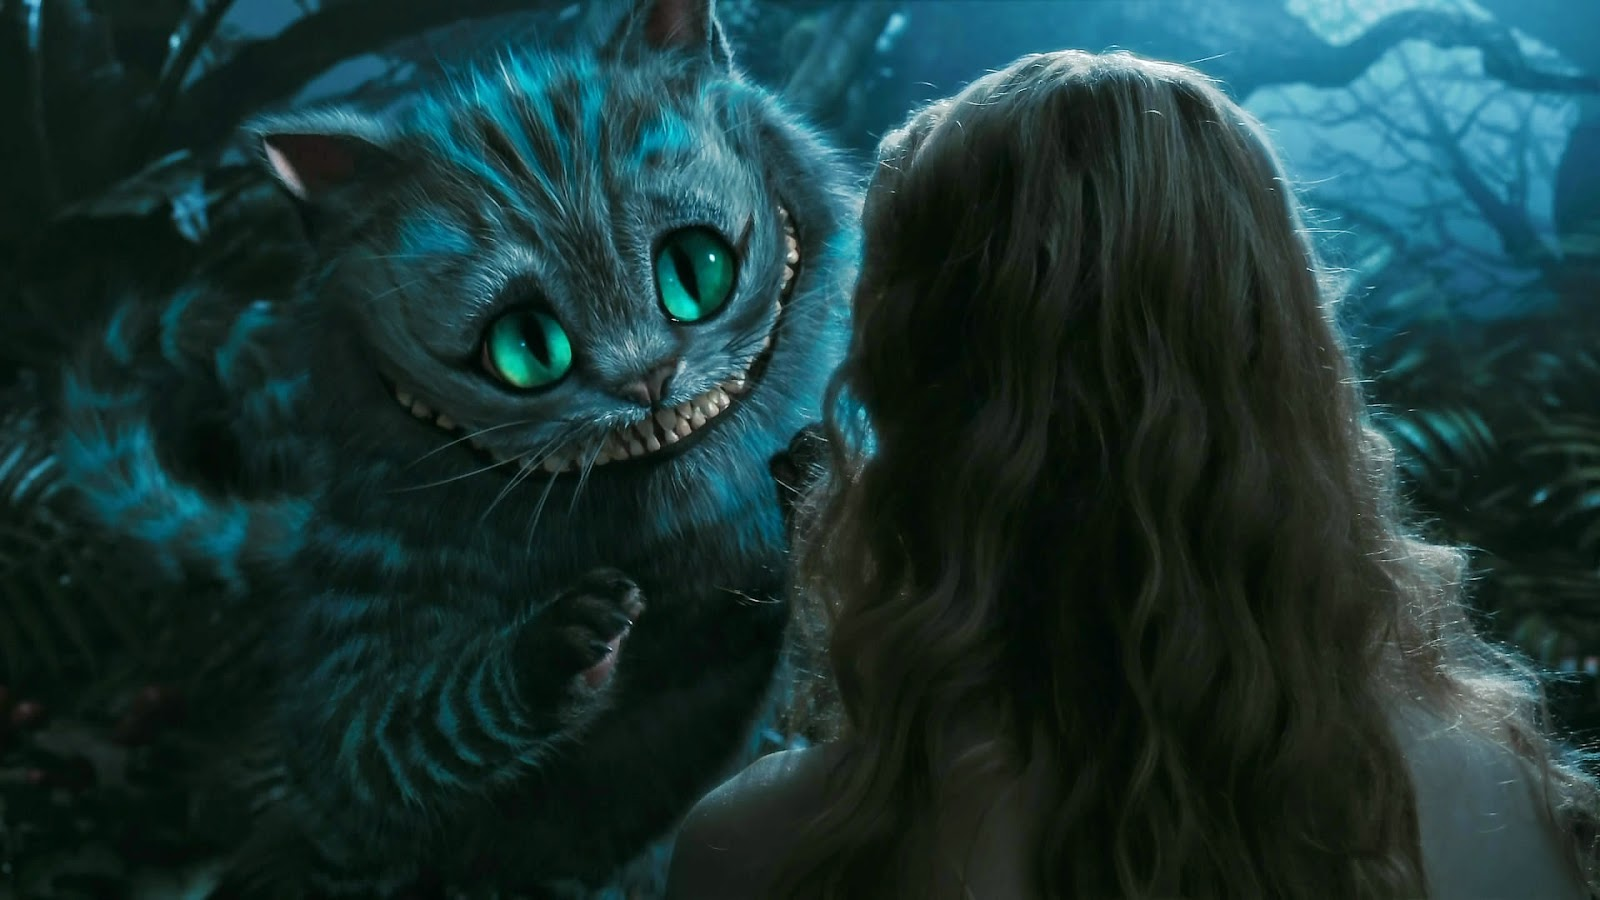 Cats Name On Alice In Wonderland